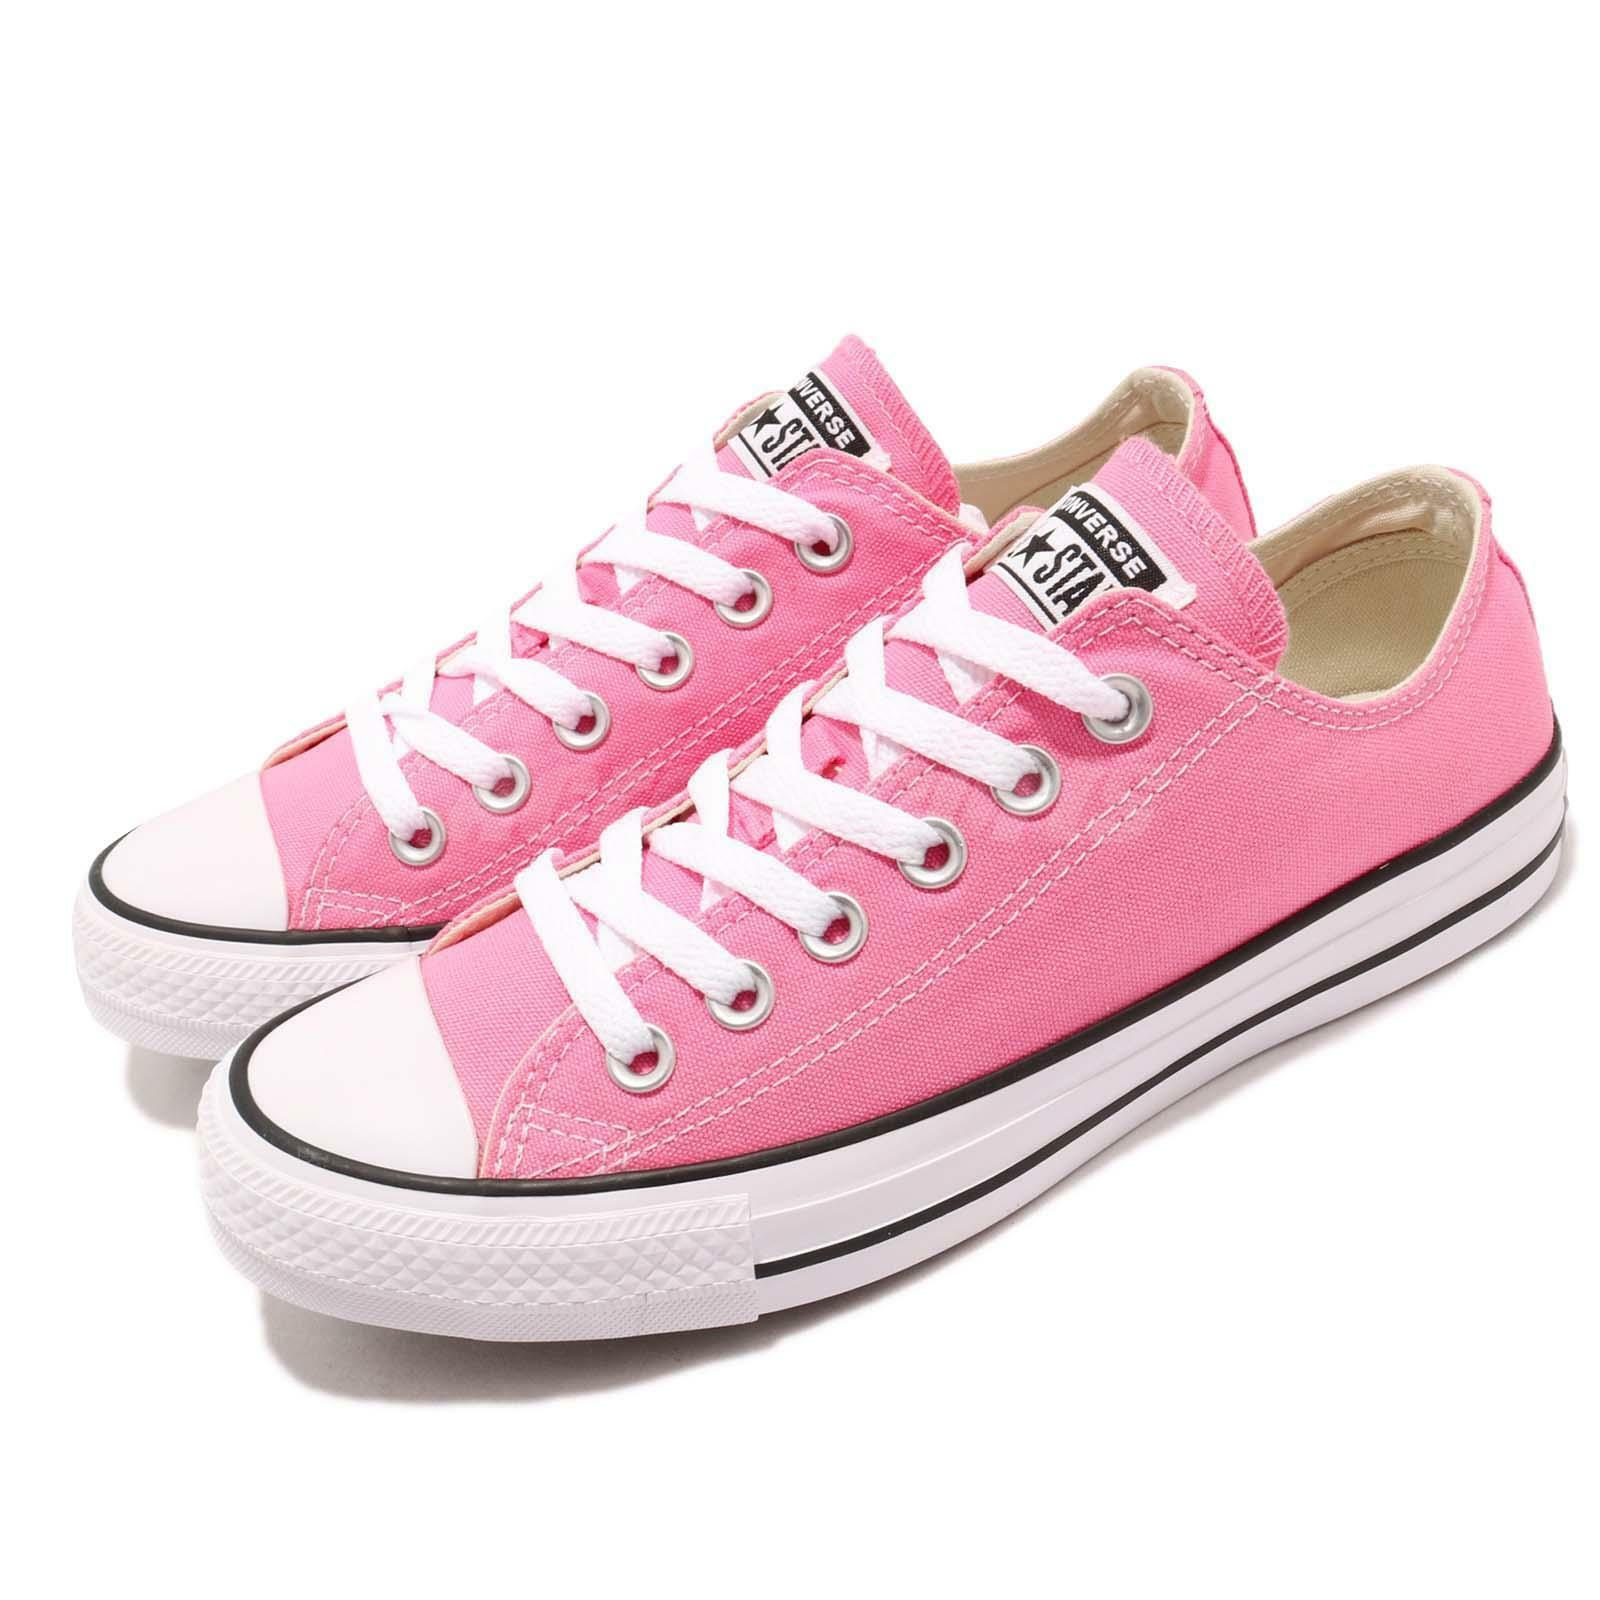 converse chuck taylor faible all star ox faible taylor Rose  Blanc  hommes femmes souliers m9007c 7af1b5